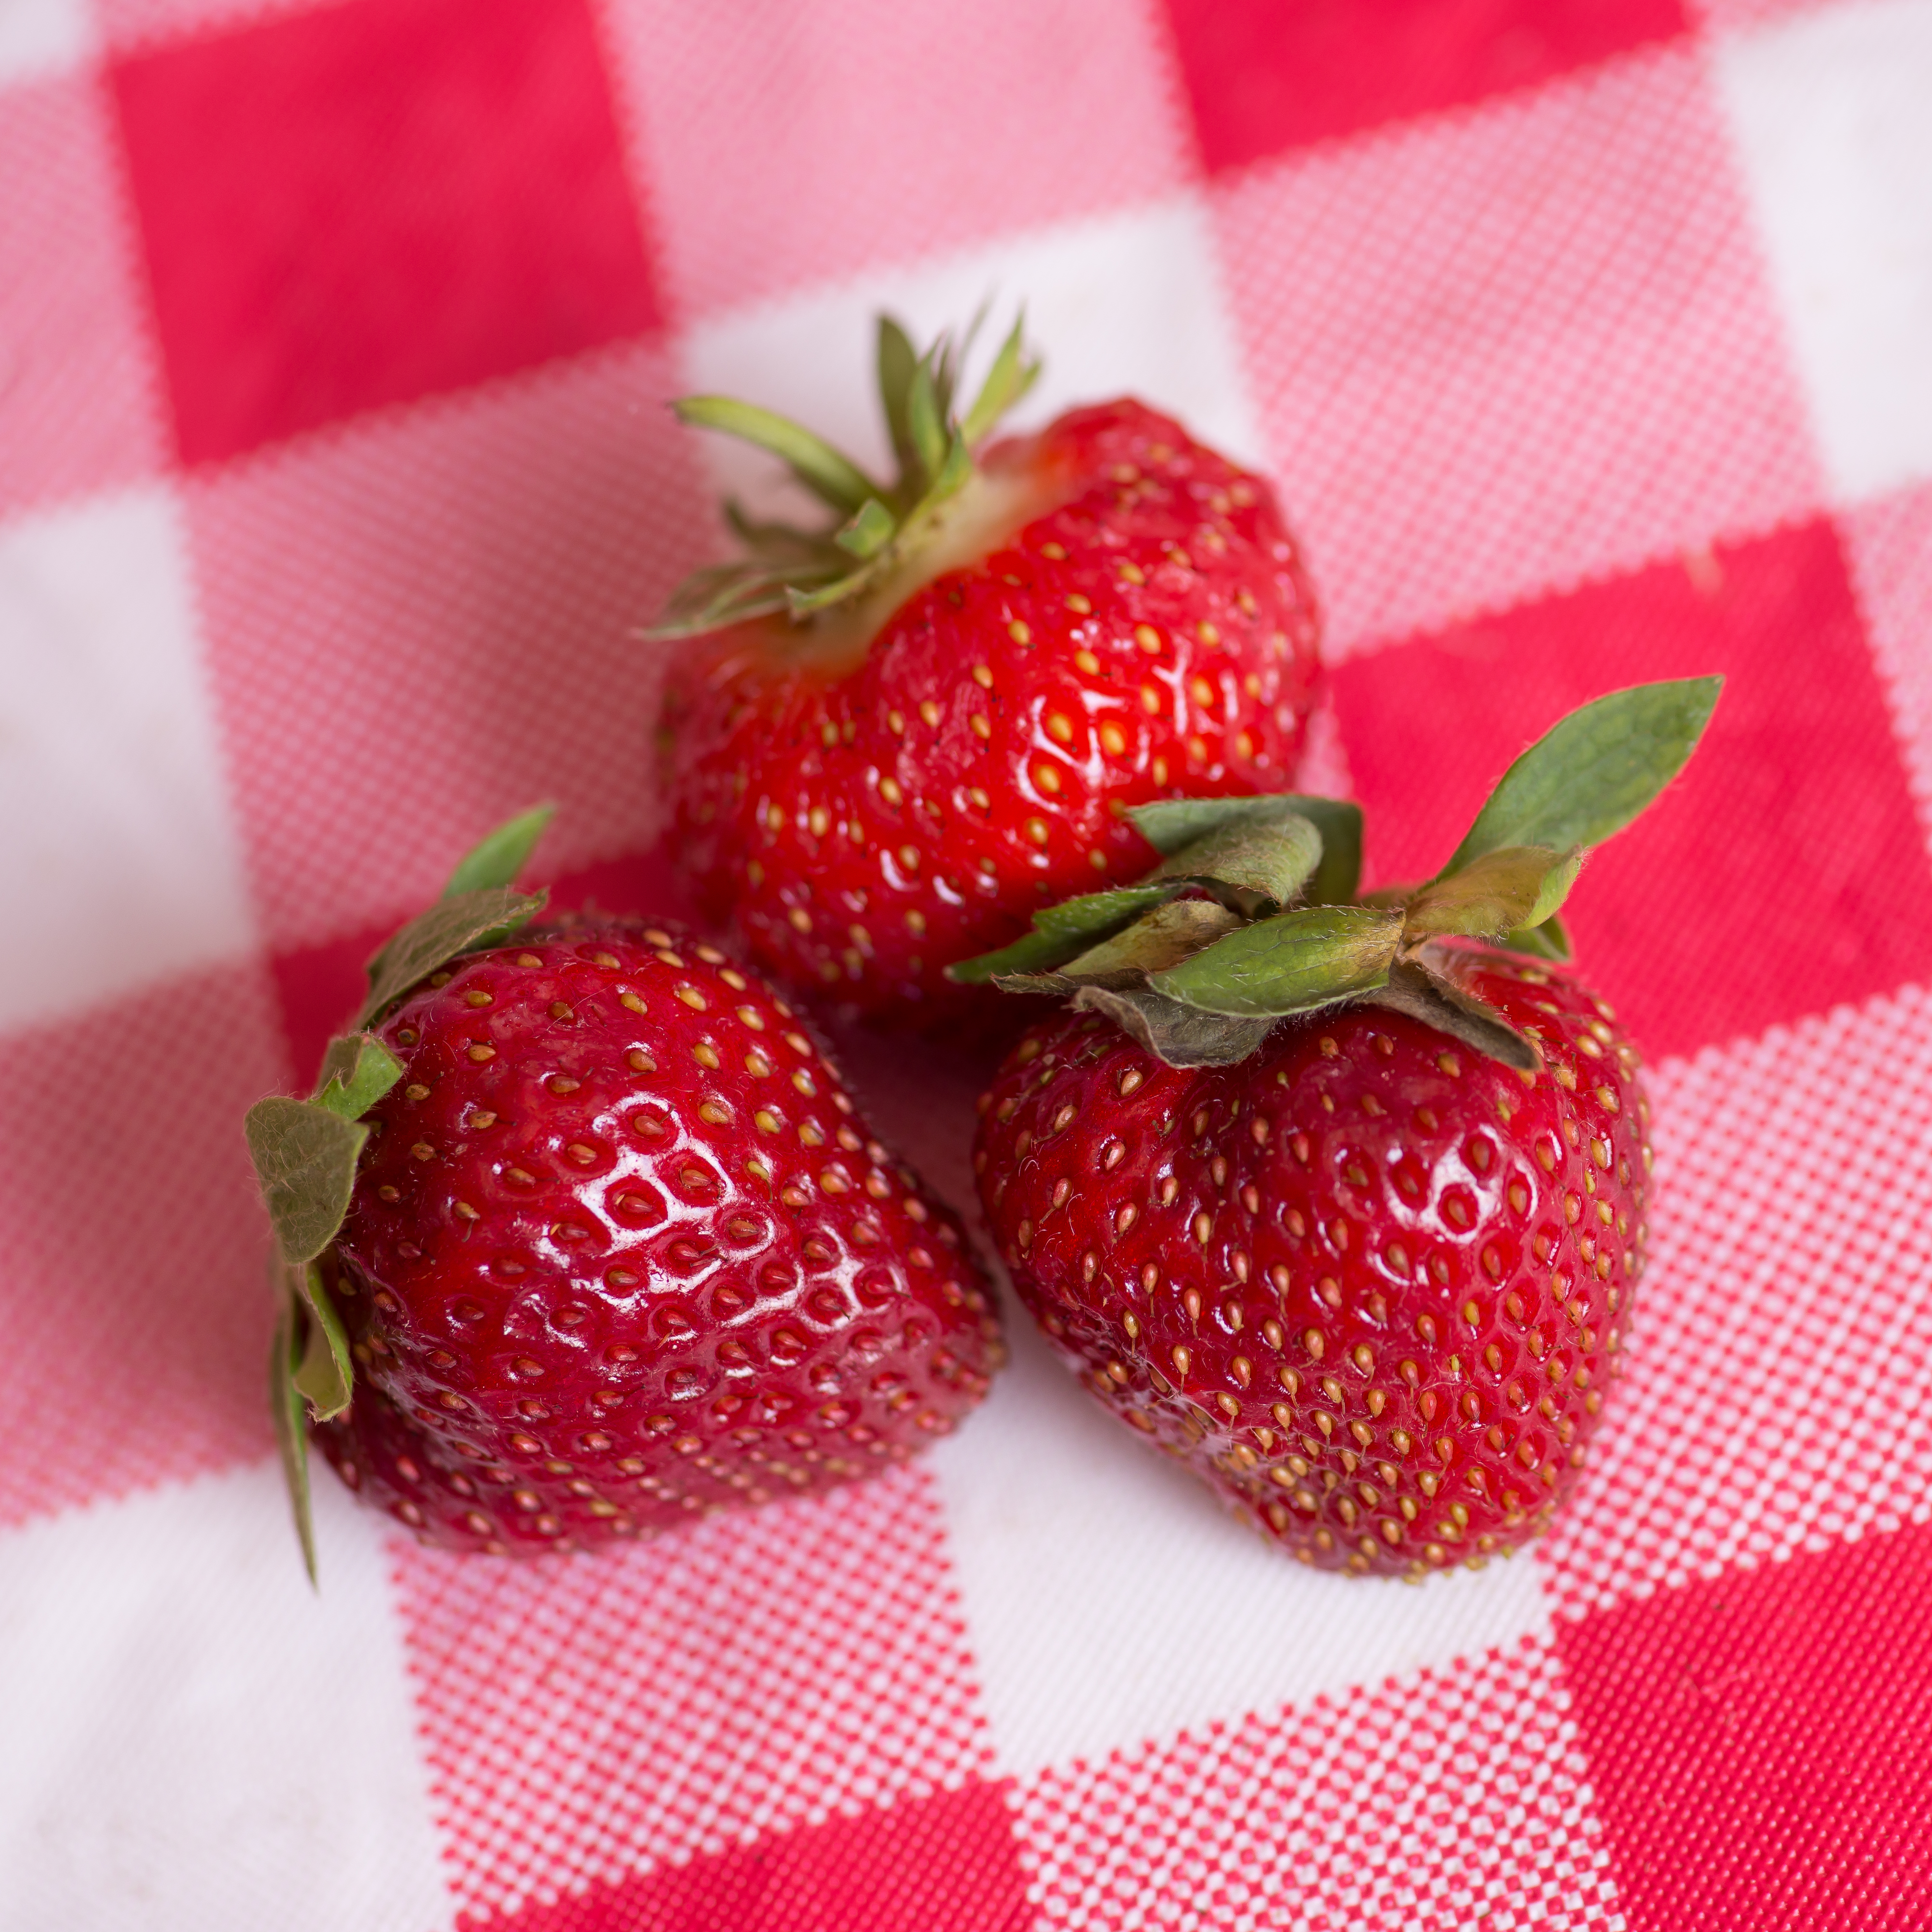 strawberries-8985